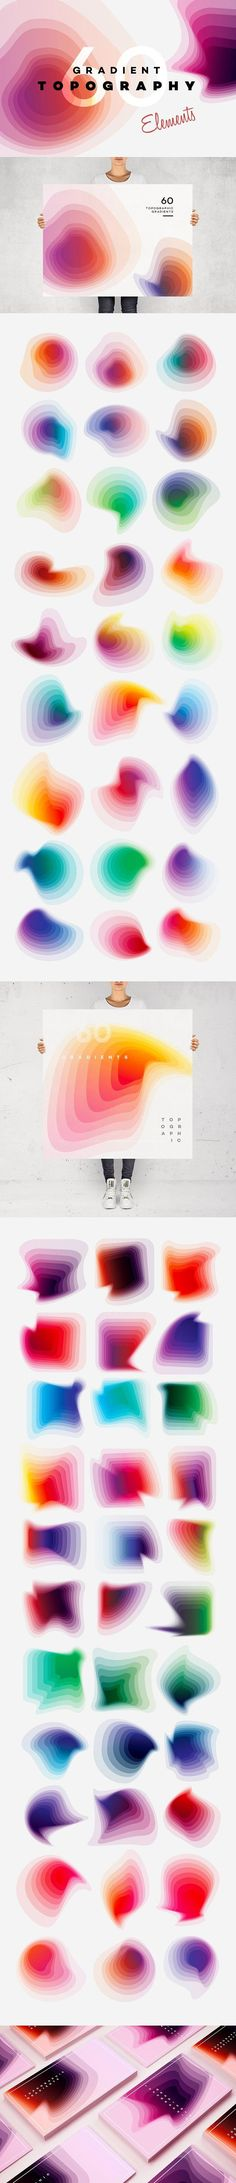 Gradient Topography collection by Polar Vectors on @creativemarket